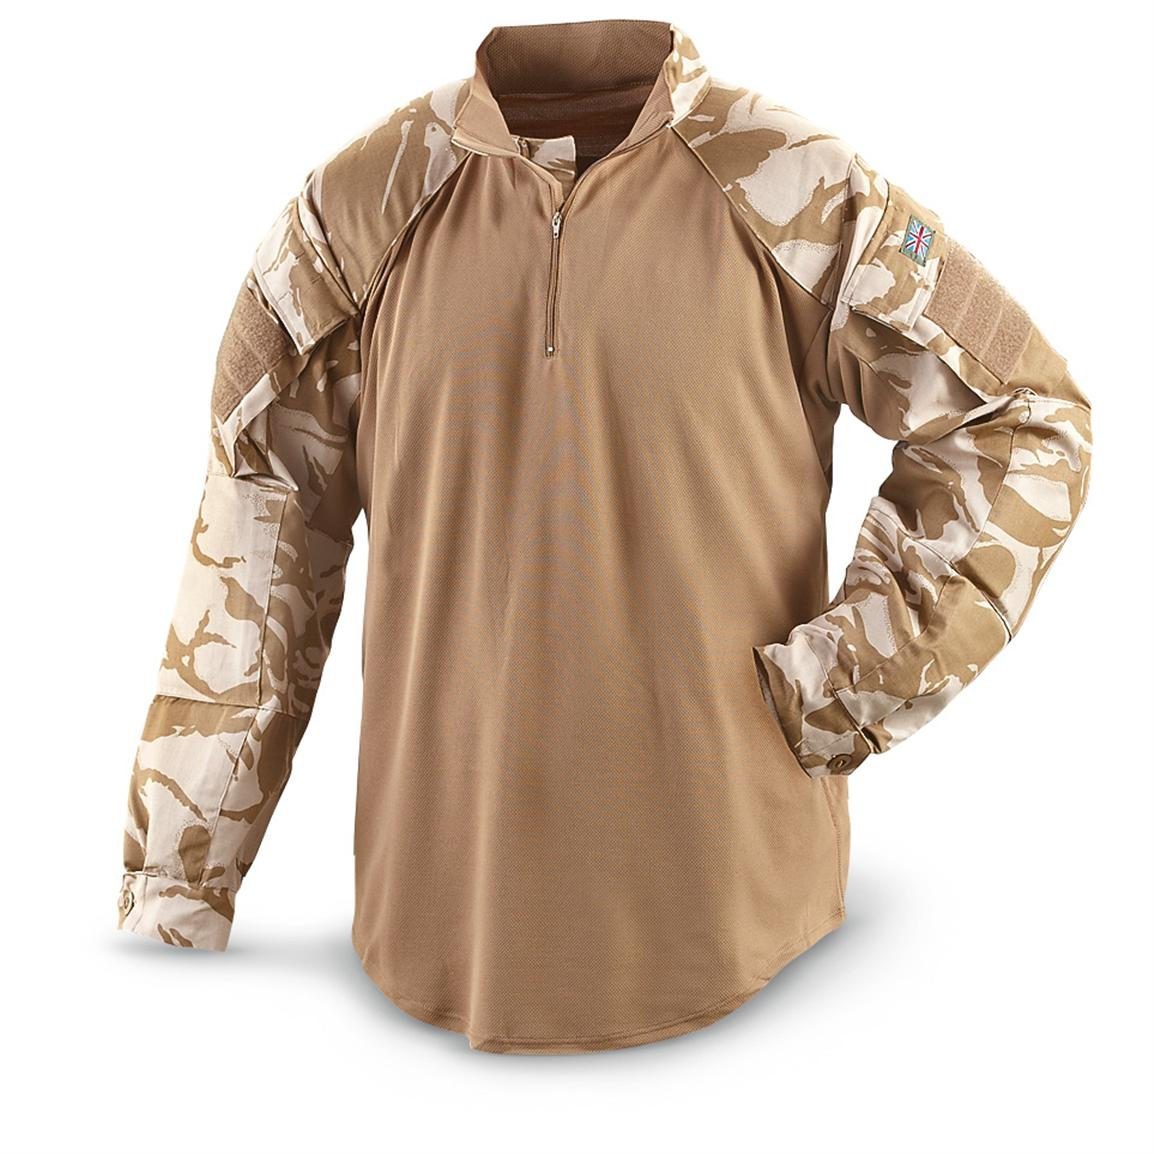 a464b921 £14.99 £9.99. 5 in stock. British Army ubac cool max Camouflage Shirt desert  ...